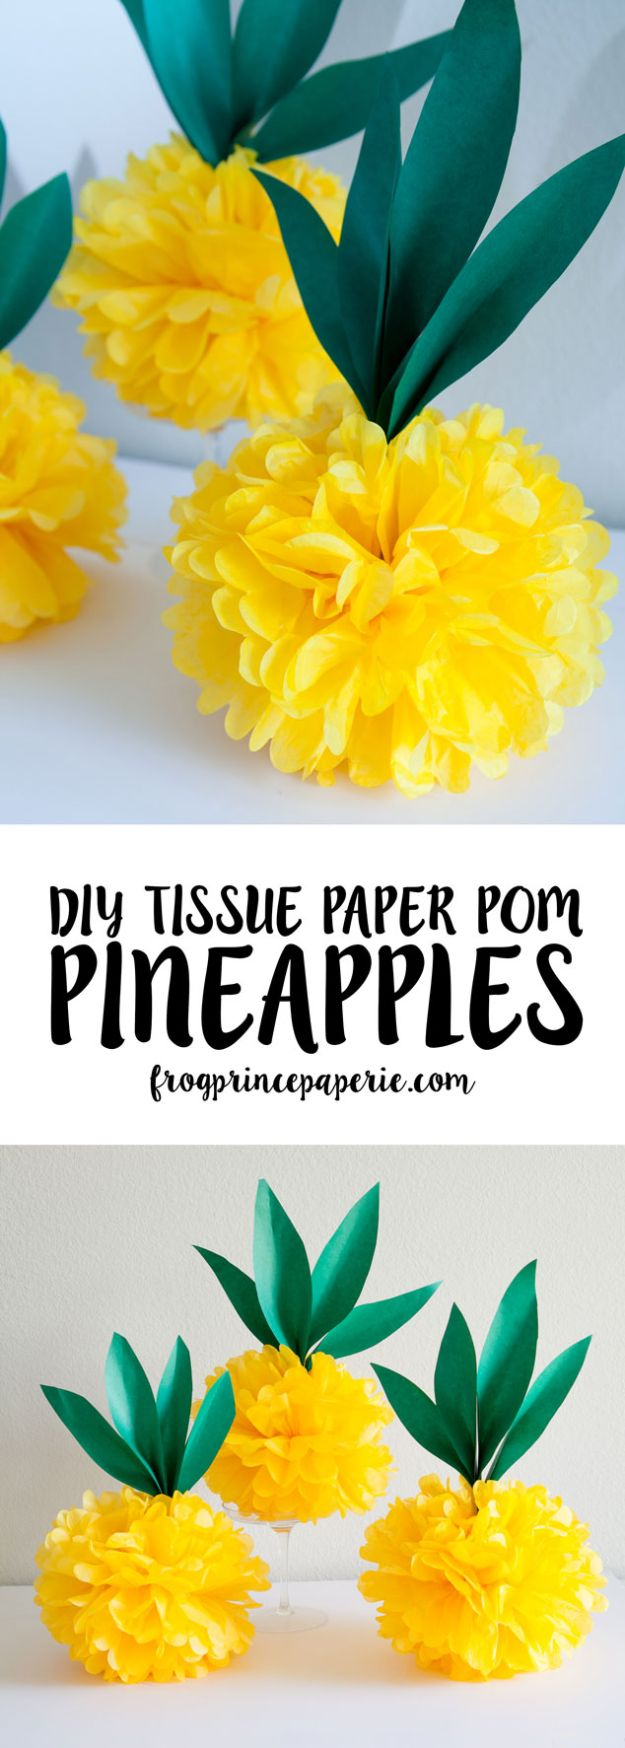 Pineapple Crafts - Luau Tissue Paper Pineapple Pouf - Cute Craft Projects That Cool DIY Gifts - Wall Decor, Bedroom Art, Jewelry Idea